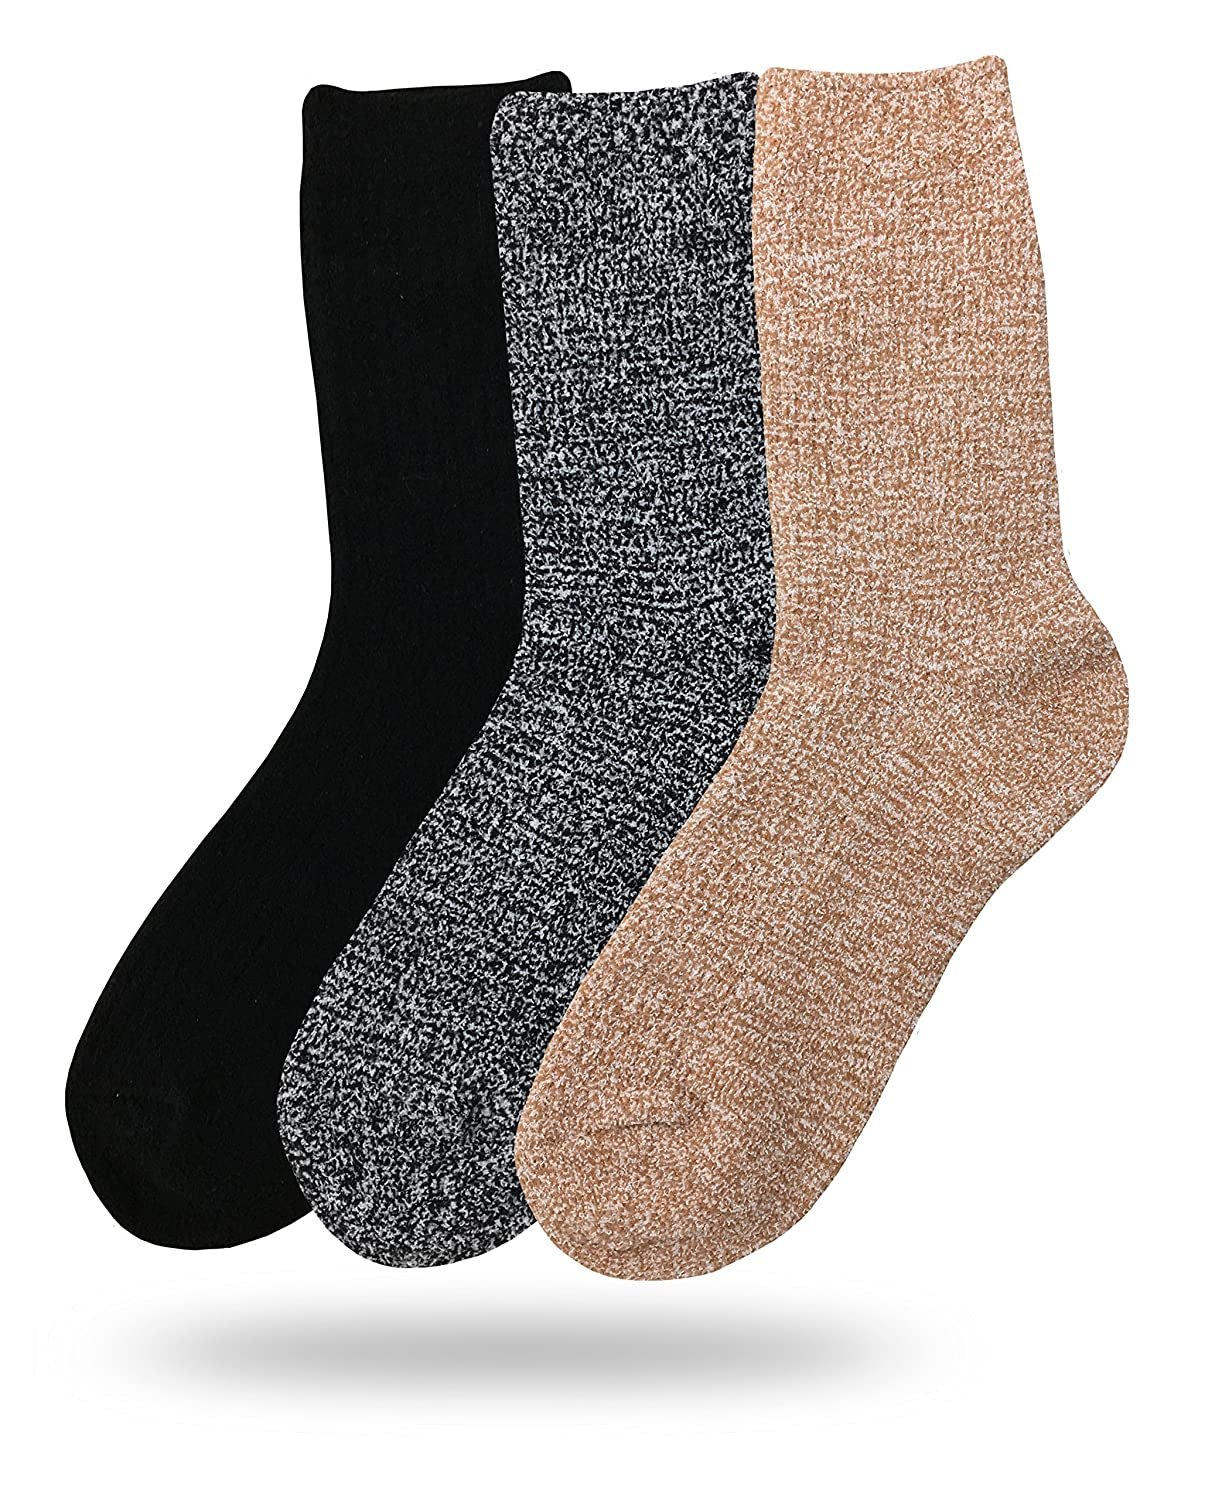 3 Pack Assorted C Eedor Womens Winter Soft Warm Fuzzy Slipper Home Socks Casual